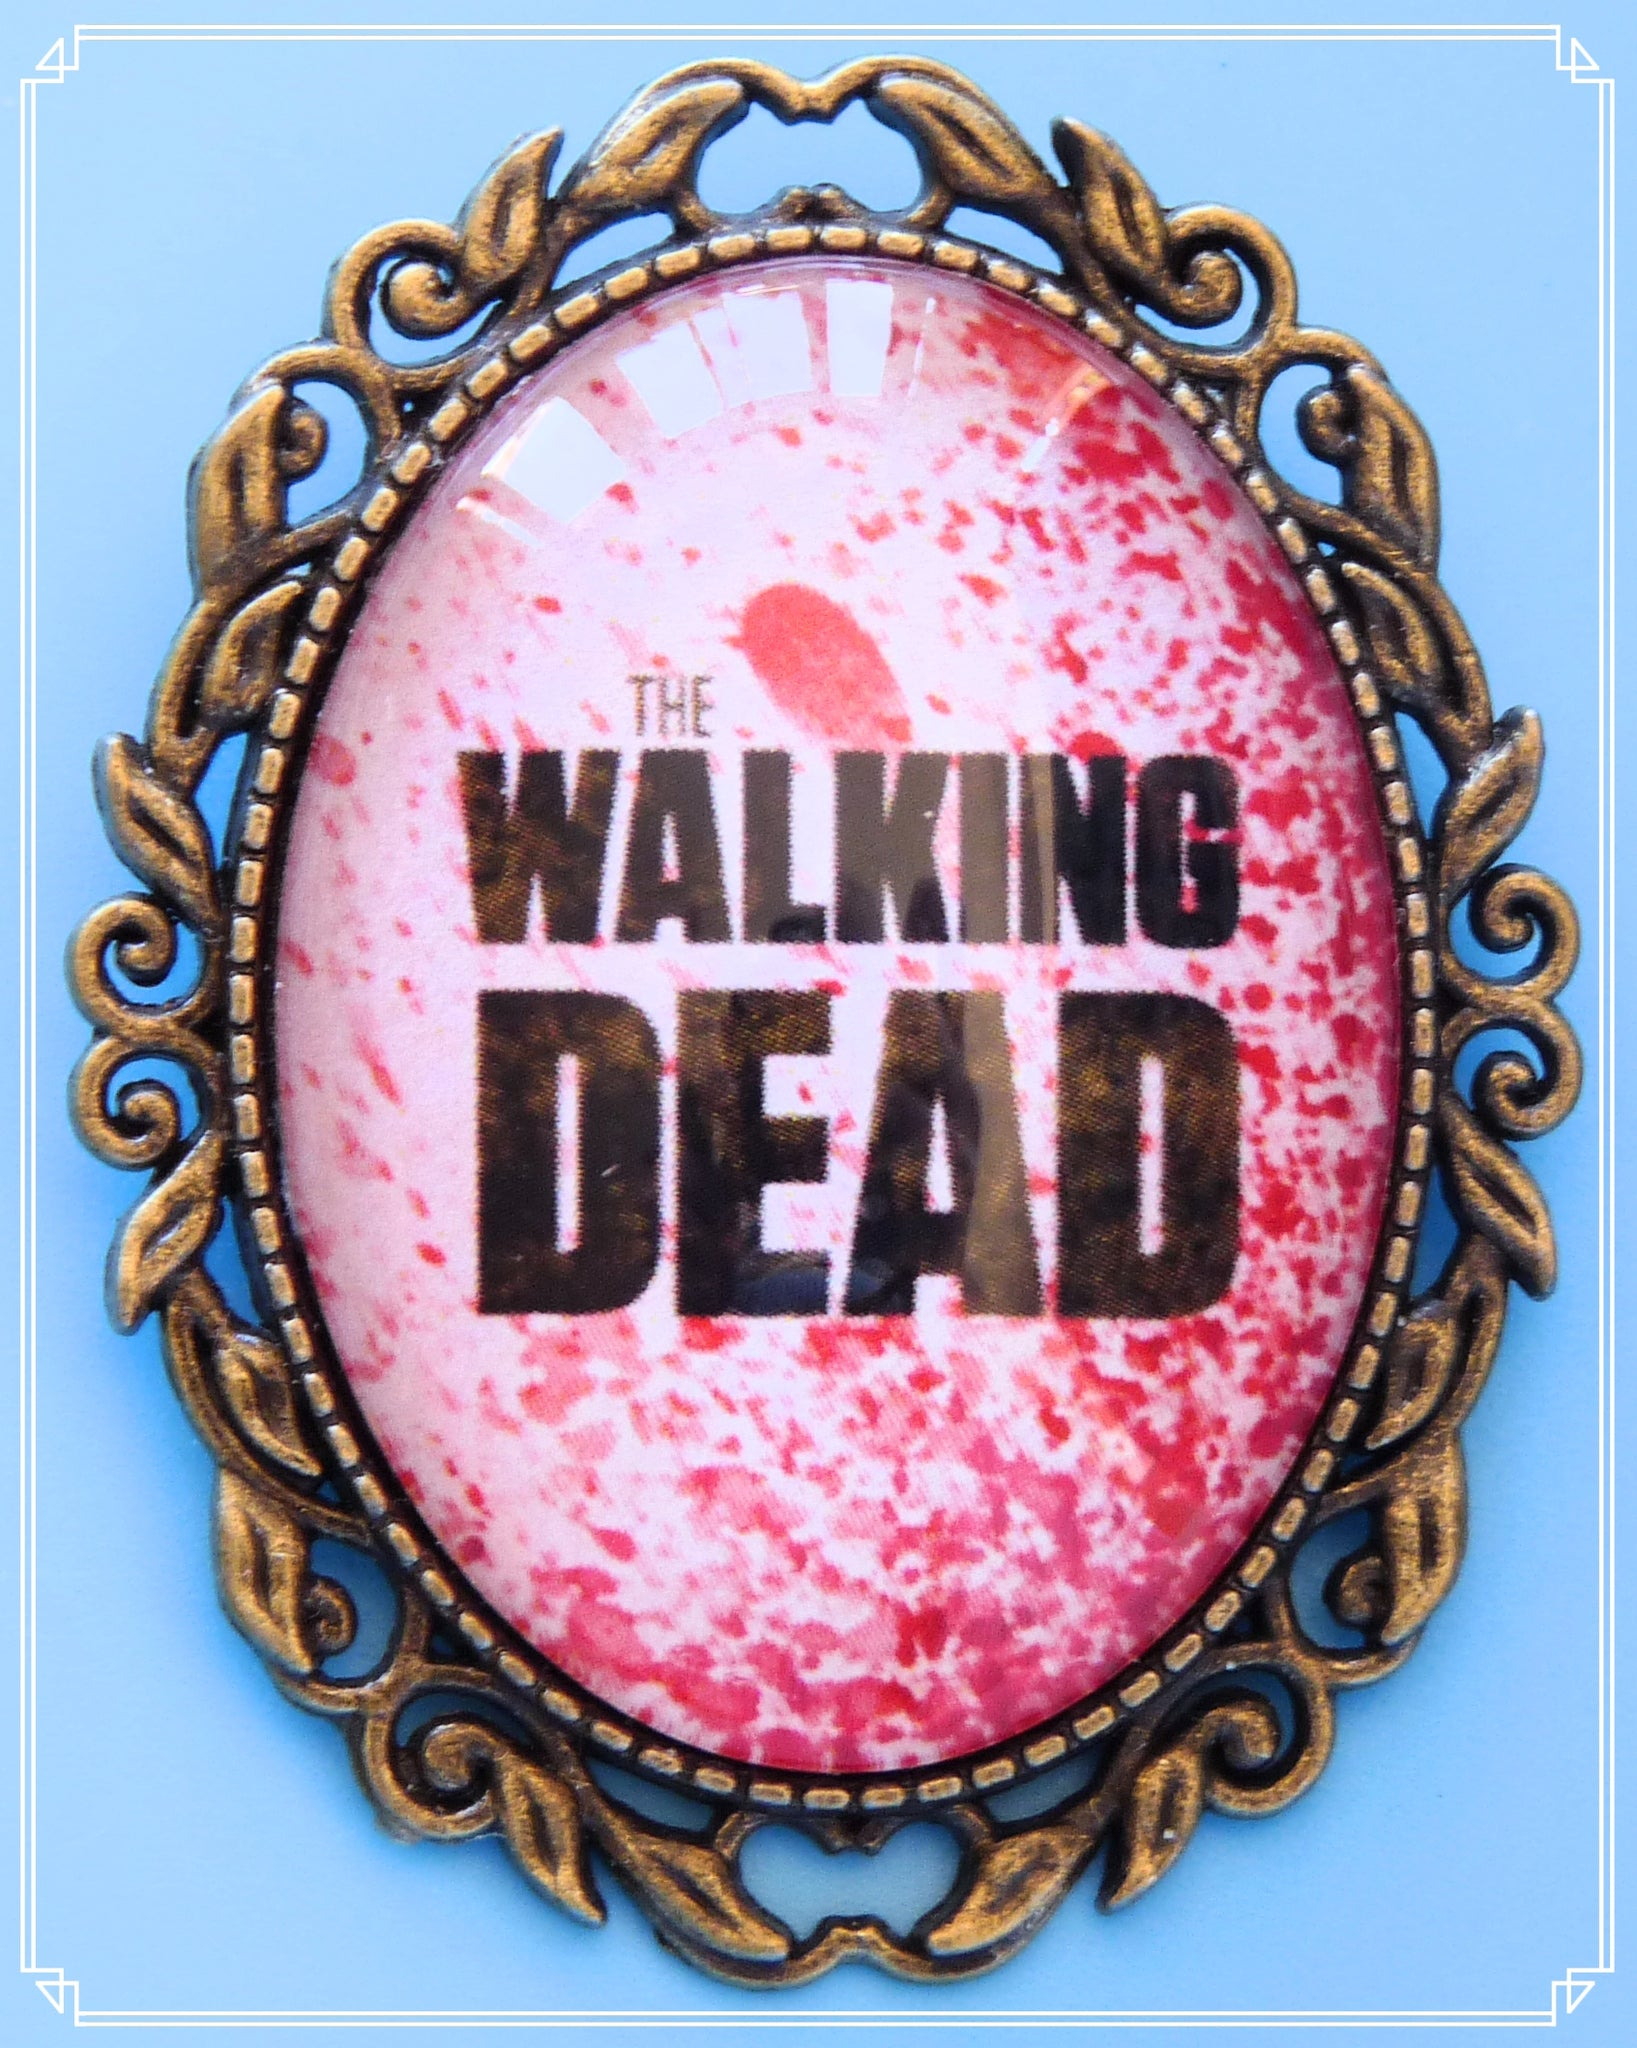 The Dead Walk brooch is part of my Pop Culture collection and inspired by the TV show The Walking Dead.